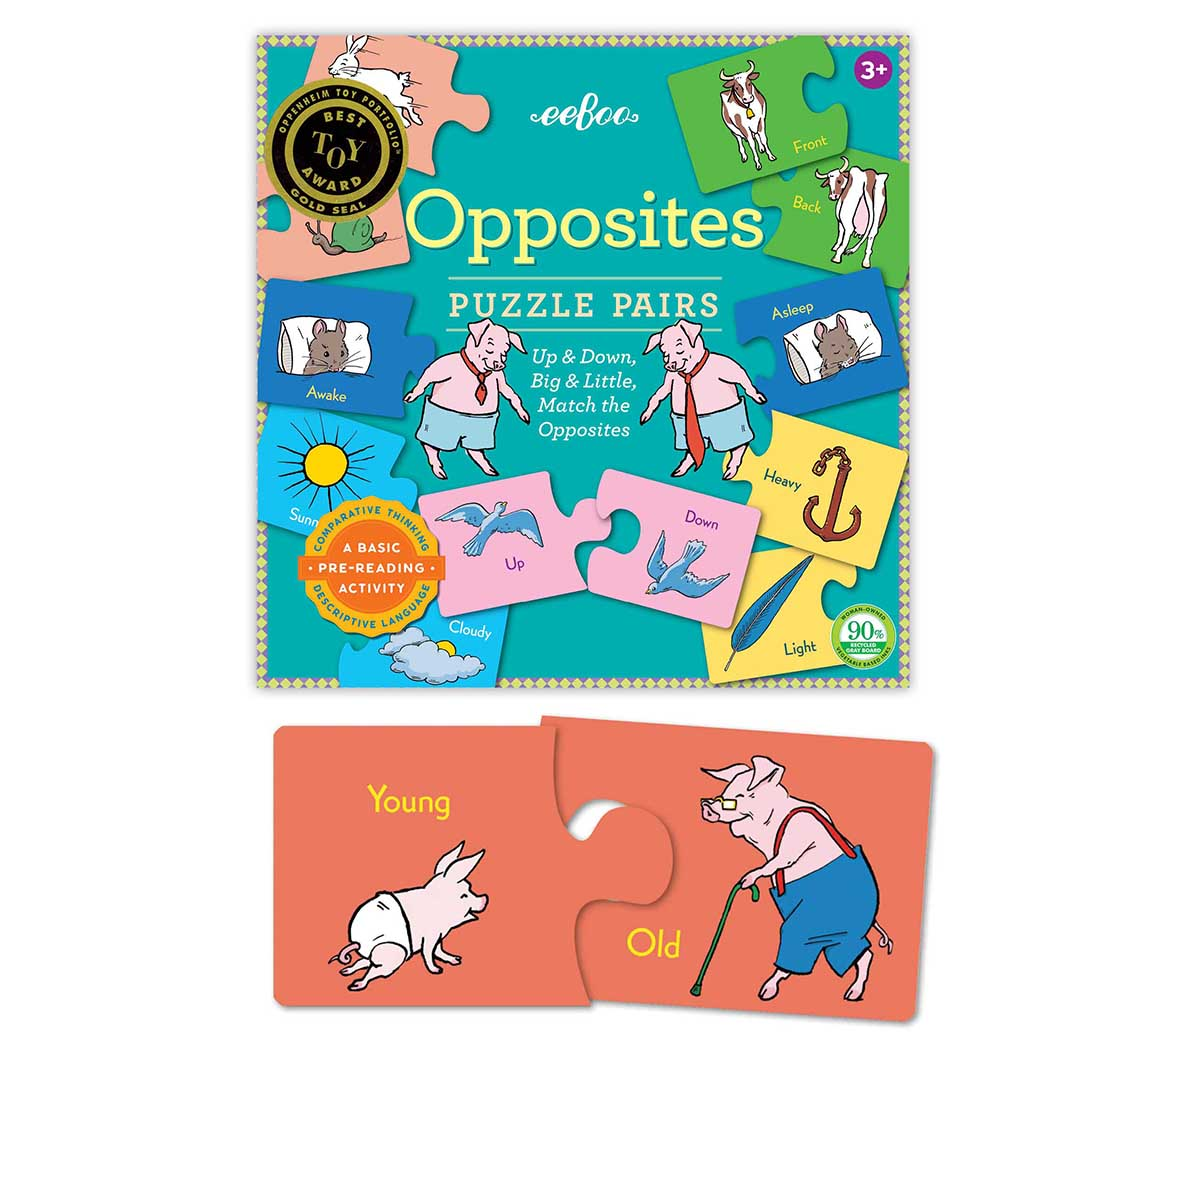 Opposites Animals Children's Puzzles